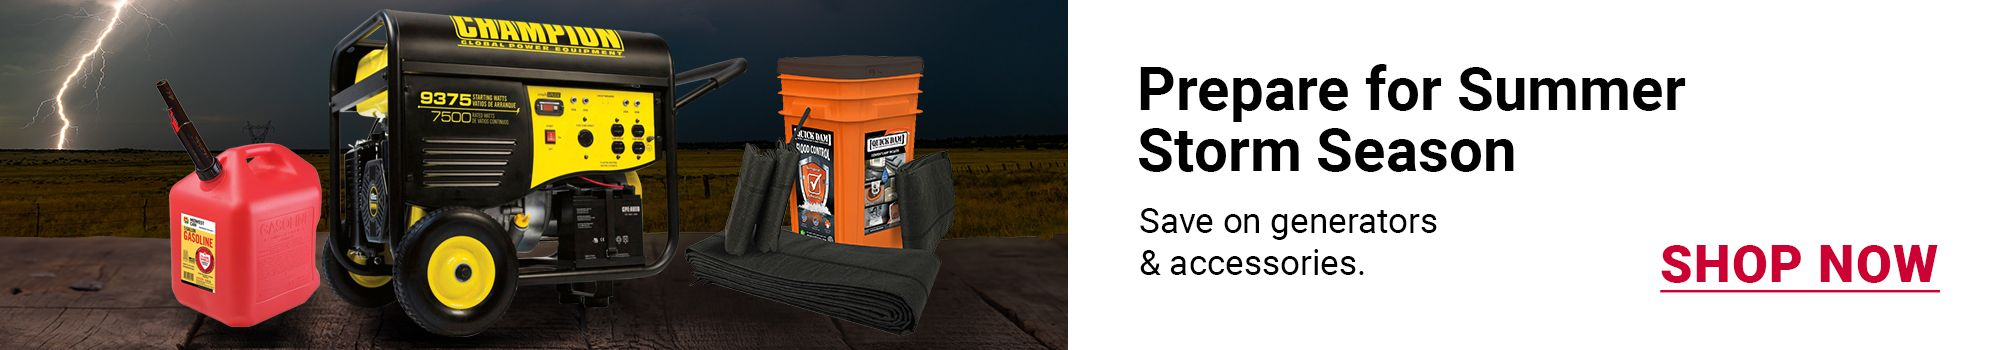 Prepare for any storm. Save $5 with coupon when you buy any 2 Duracell Batteries. Click to SHOP NOW.